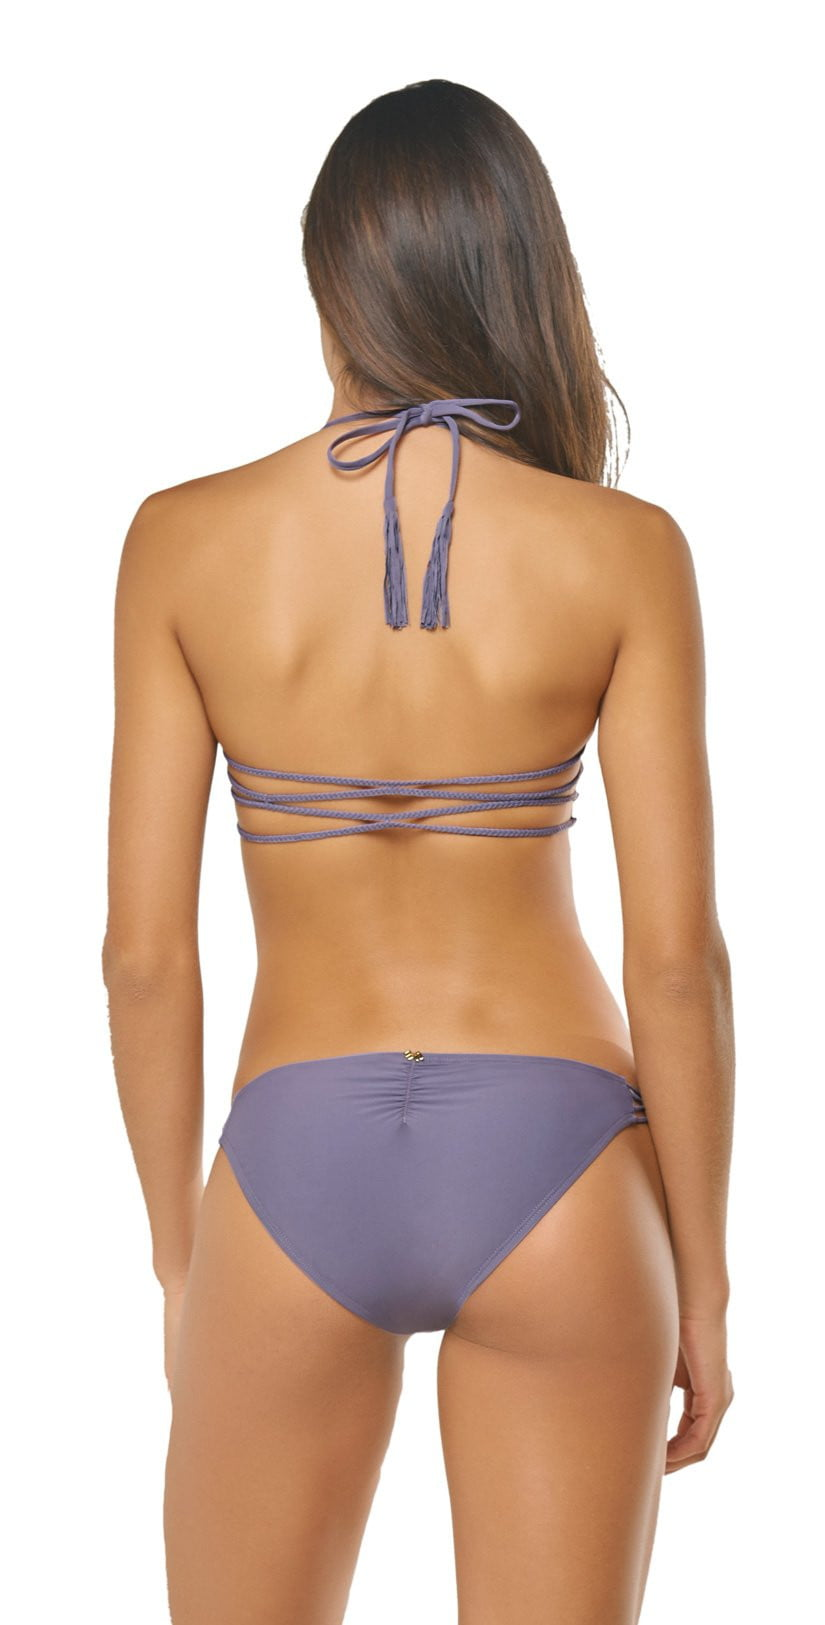 PilyQ Amethyst Braided Zen Top AME-177H Back